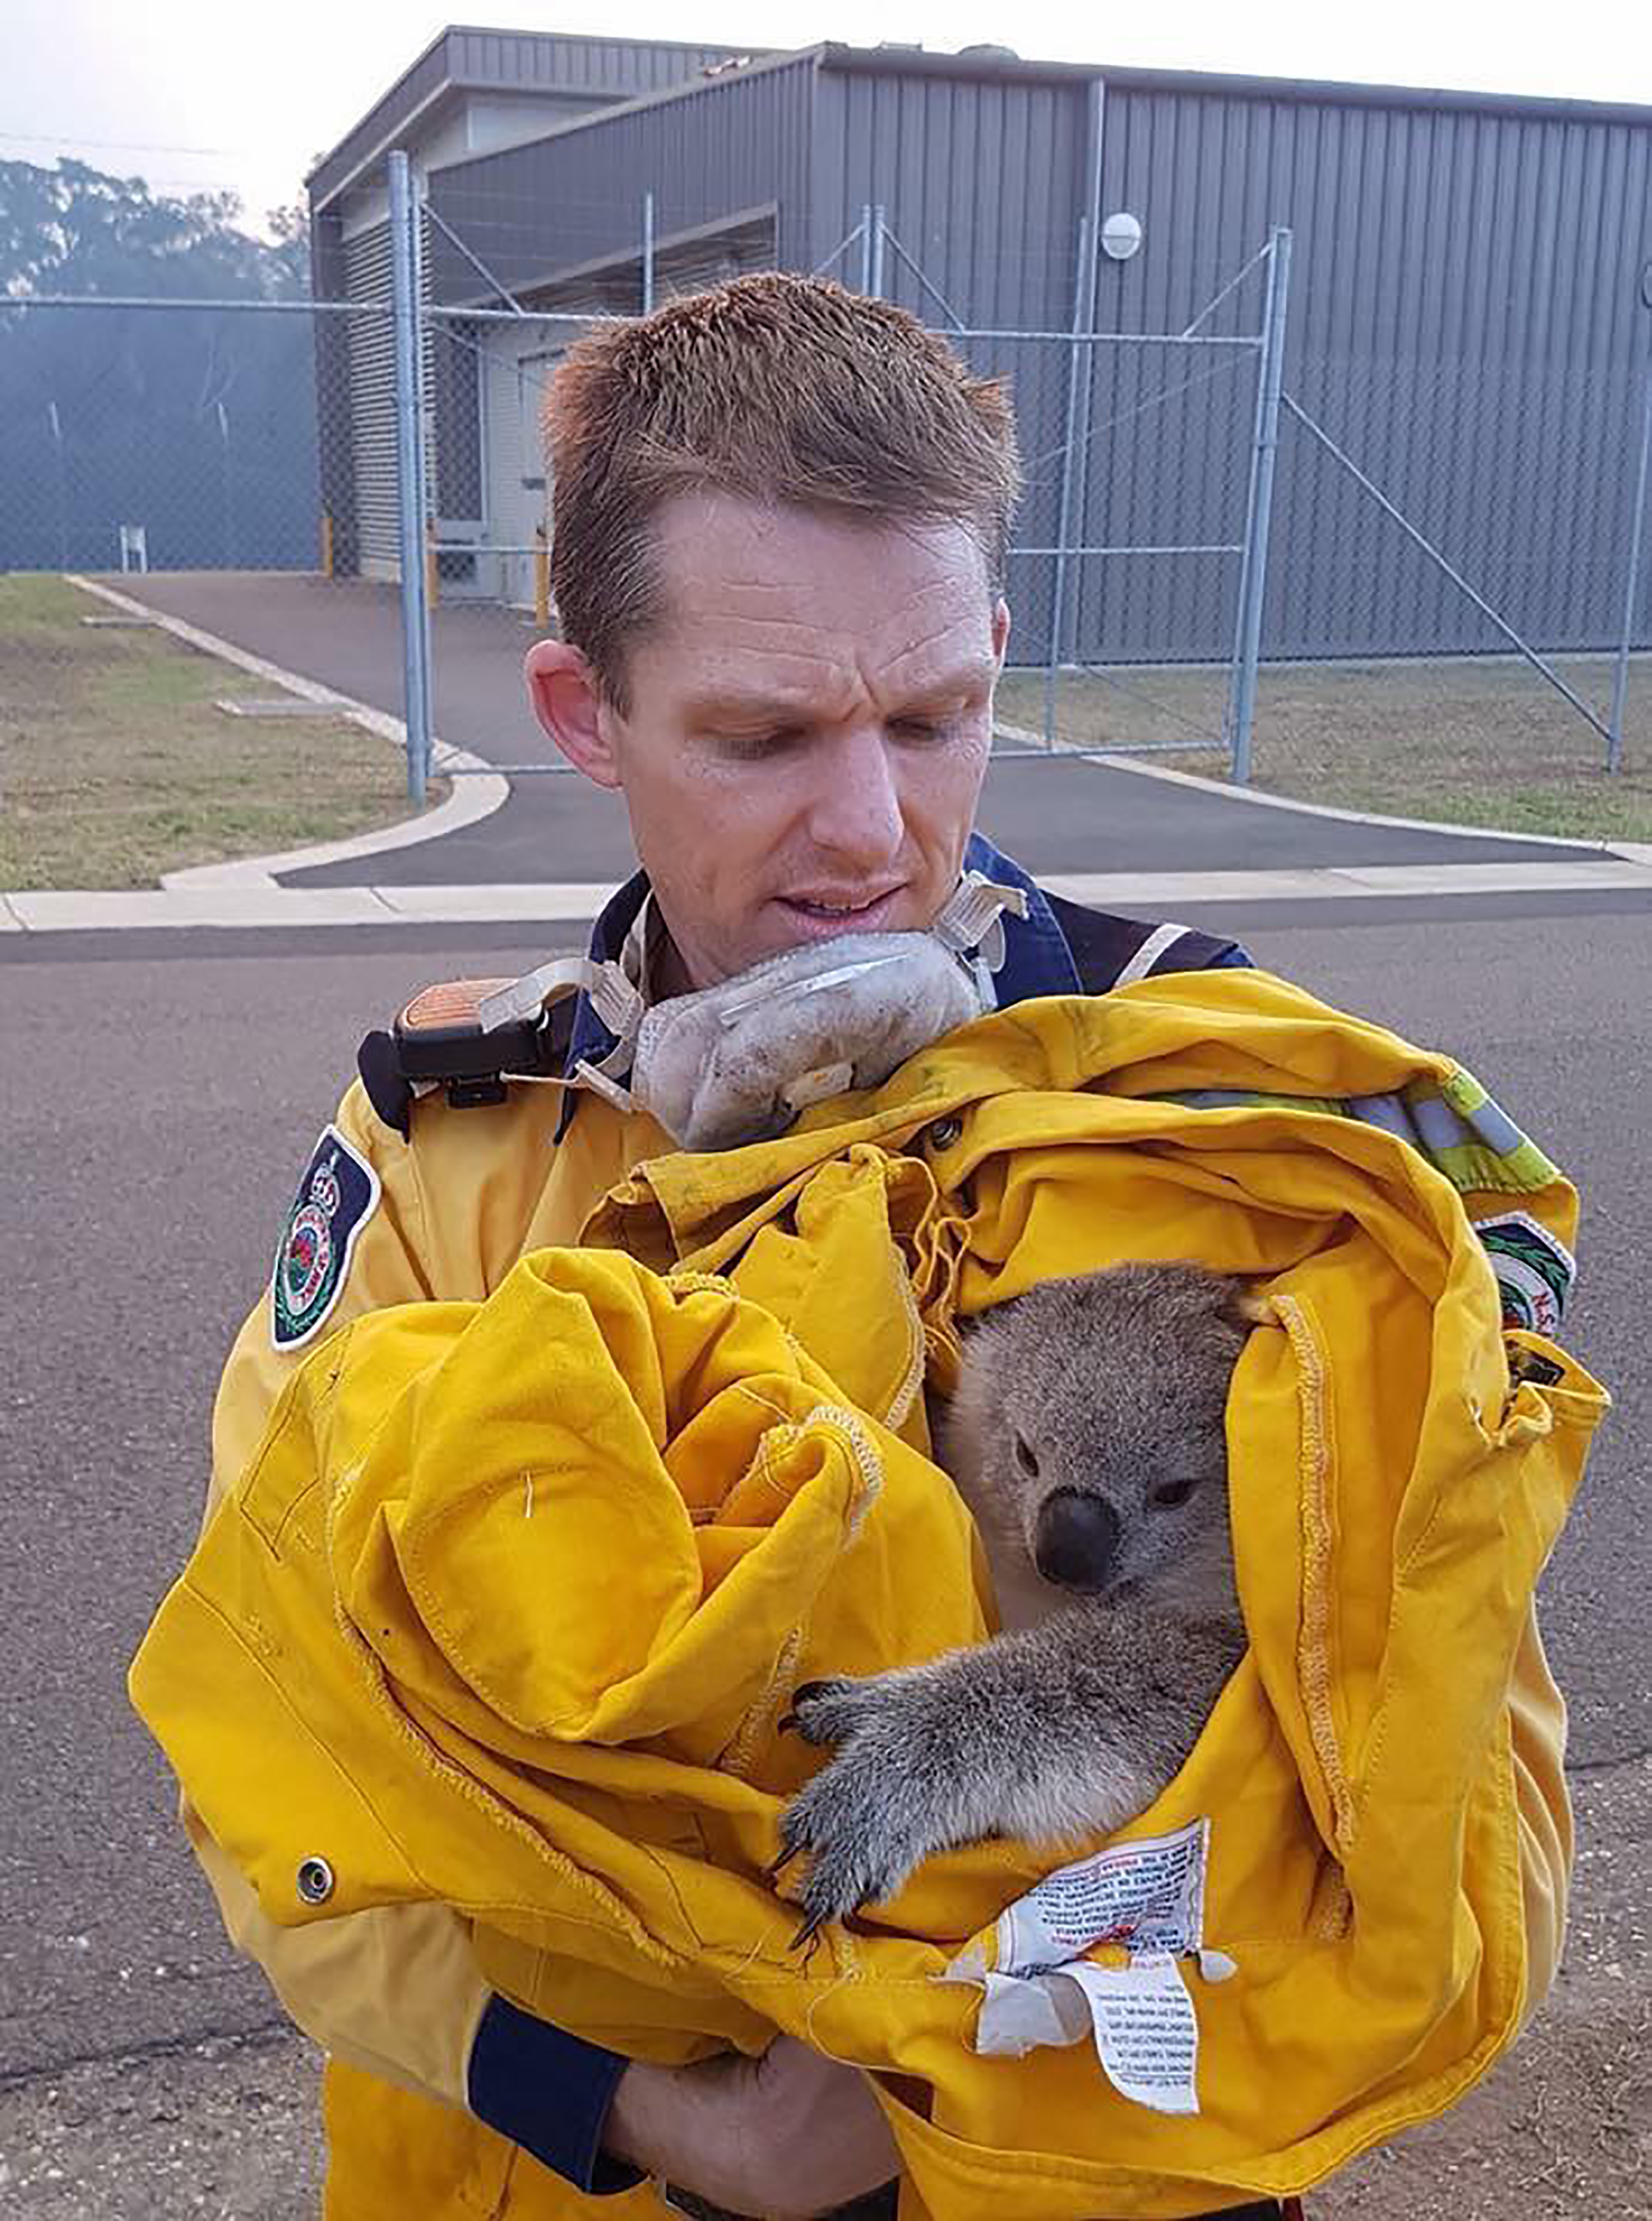 Un bombero con un koala salvado de las llamas en la Liverpool Military Area, una base del ejercito cerca de Sydney (AFP PHOTO / Fire & Rescue NSW / FIRE & RESCUE NSW)